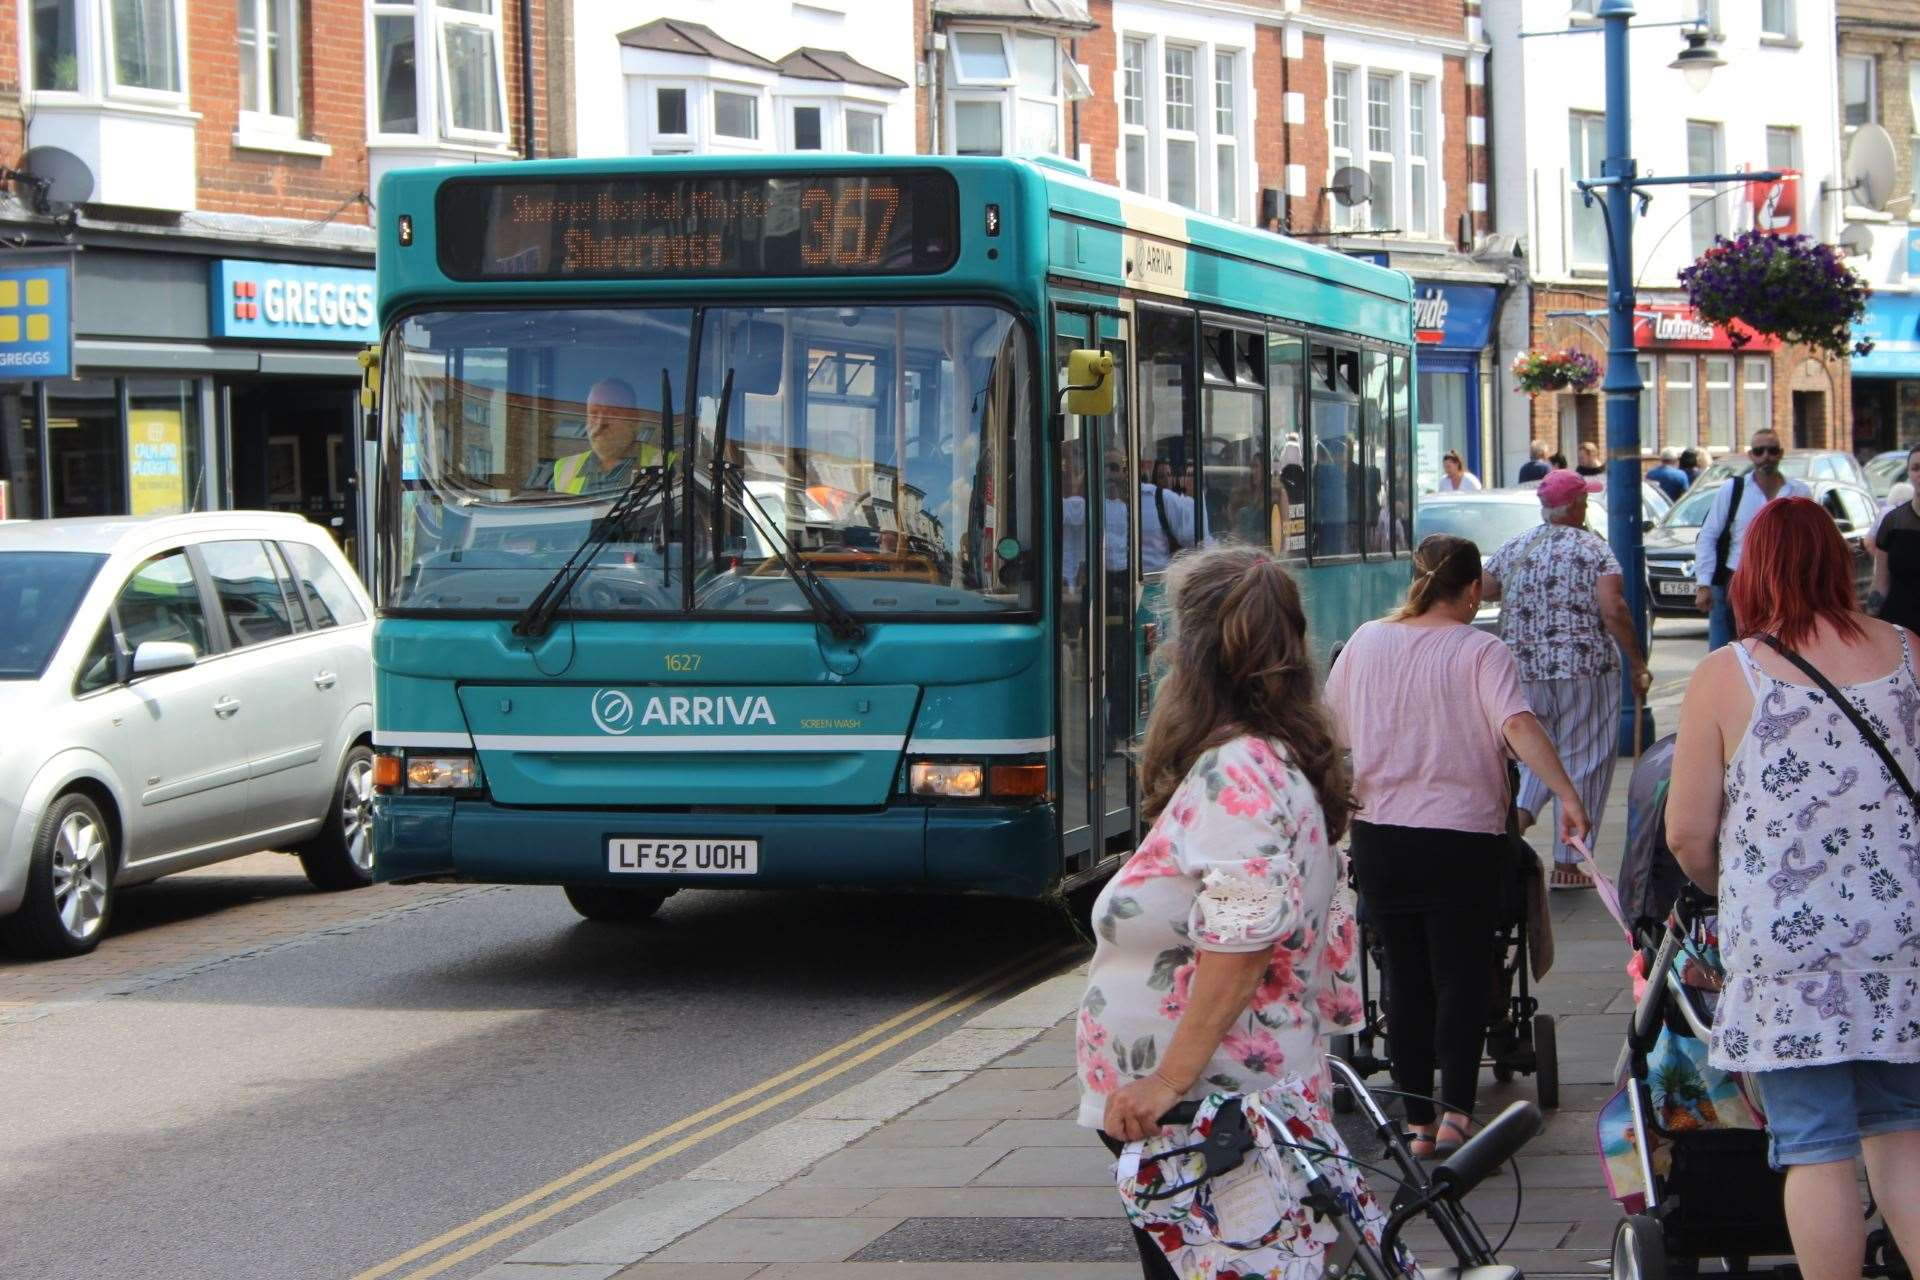 Bus timetable problems on Sheppey for Caroline Lind (15120218)